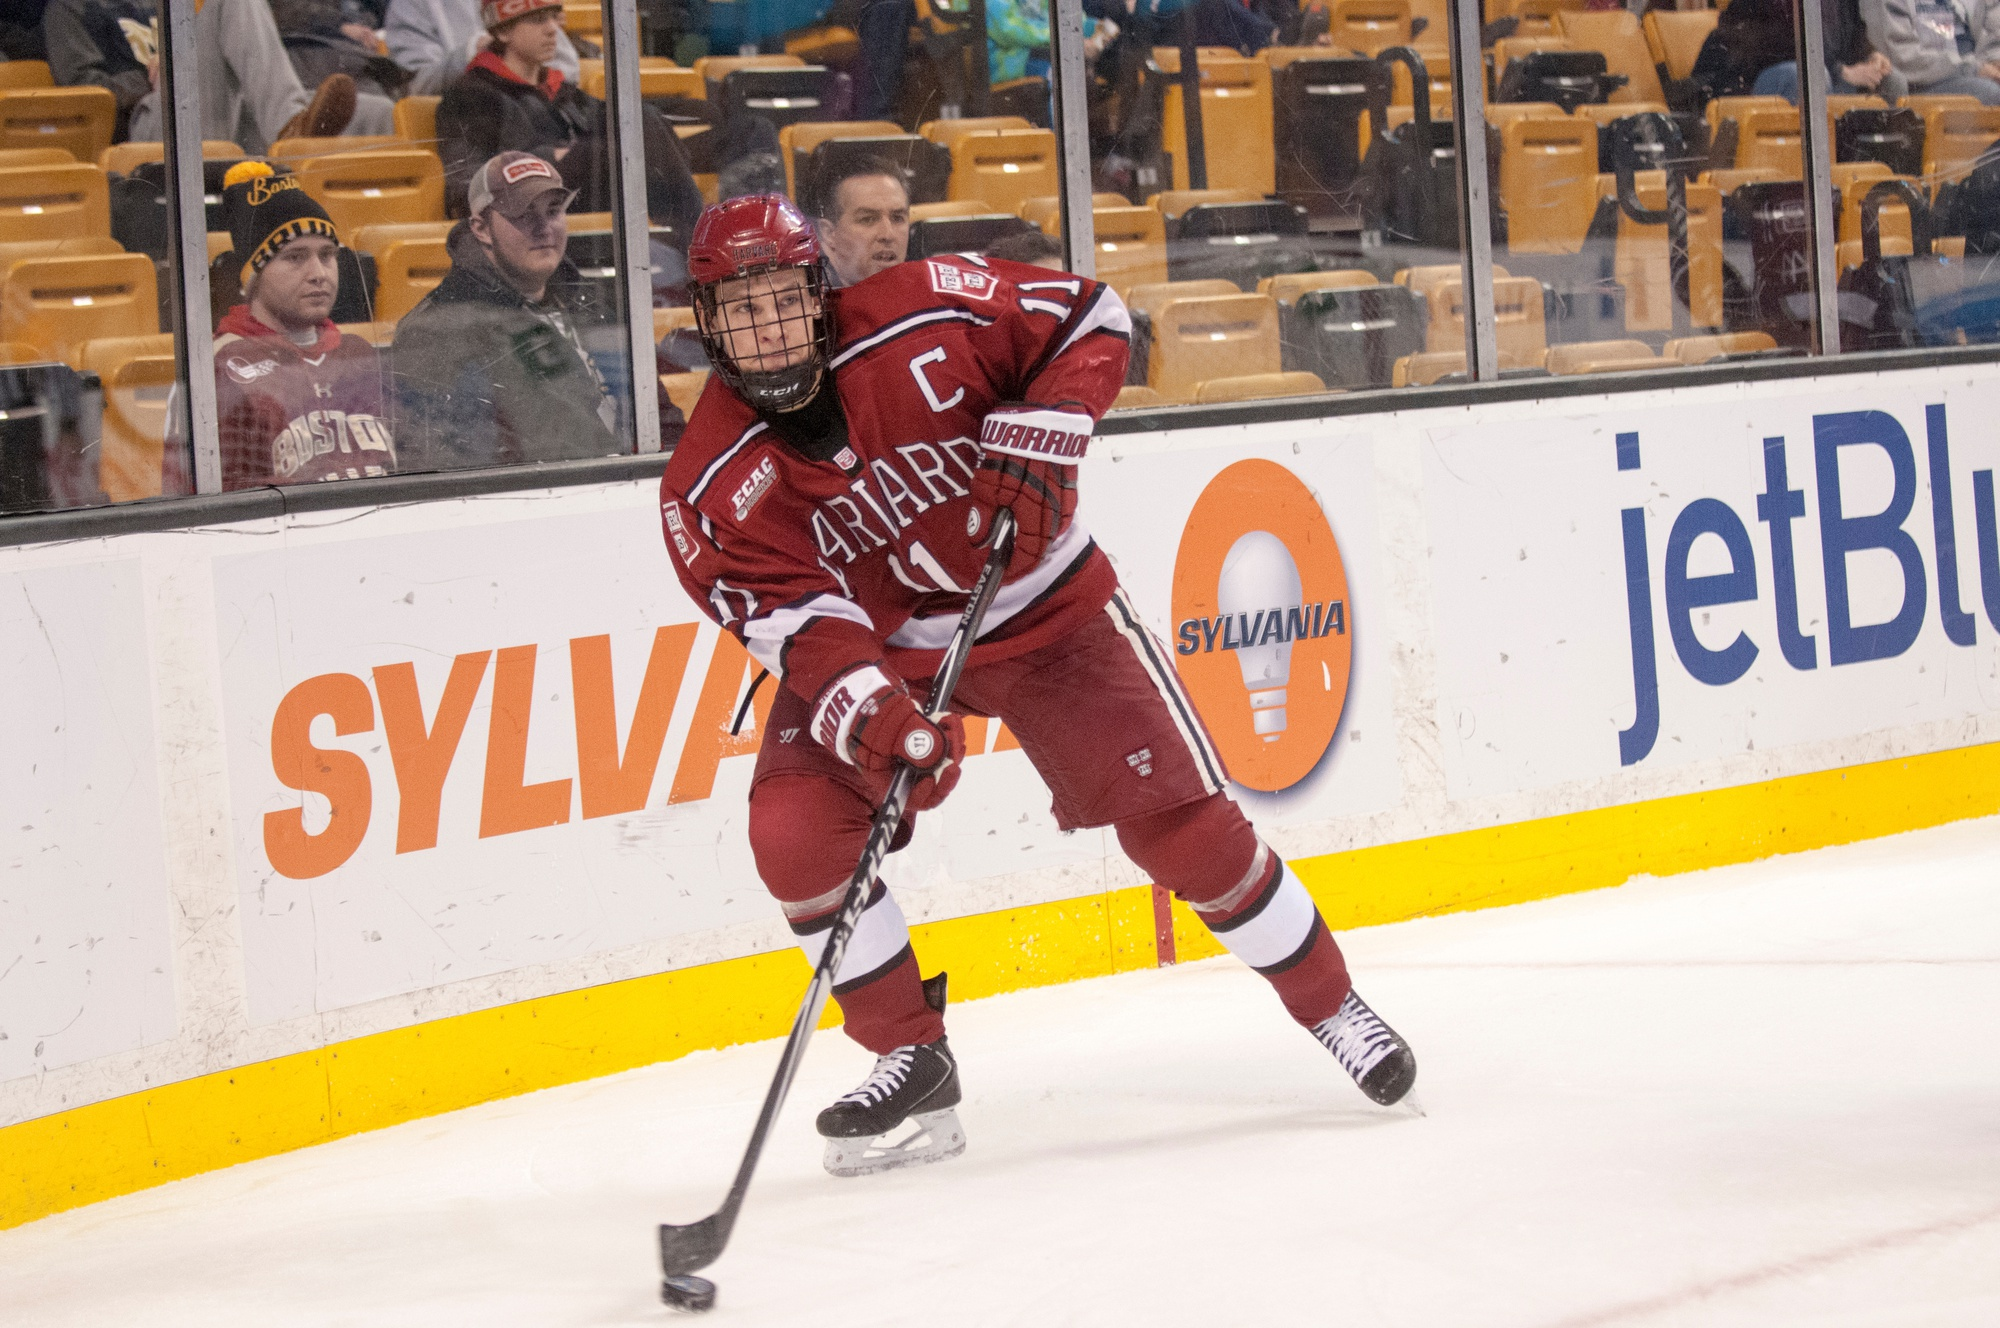 Junior co-captain Kyle Criscuolo had the lone goal of the night for the Crimson in its 5-1 loss to St. Lawrence on Friday.